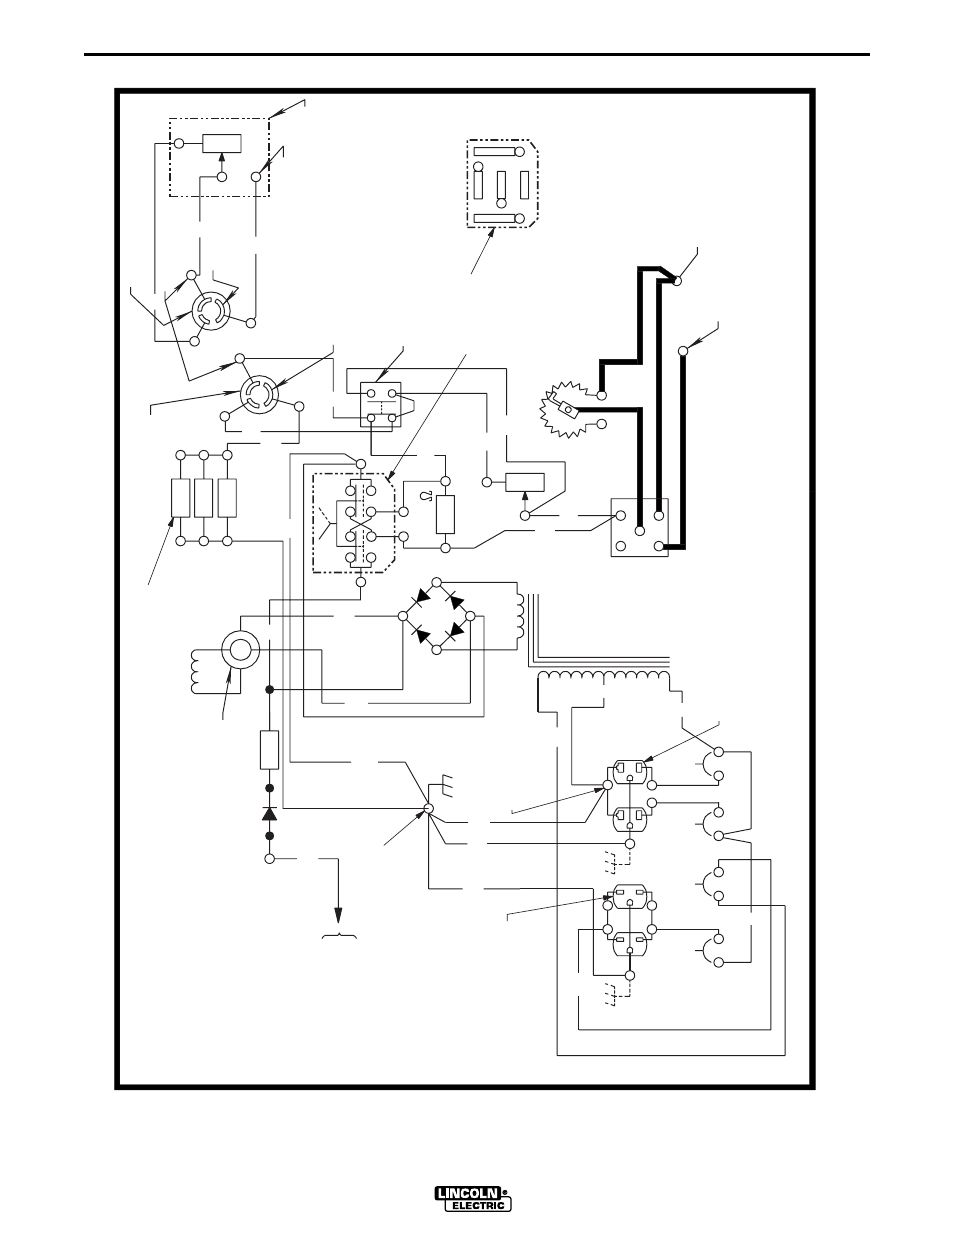 hight resolution of wiring diagrams sae400 weld n air control wiring diagram sae 400 weld n air lincoln electric im581 sae400 user manual page 28 34